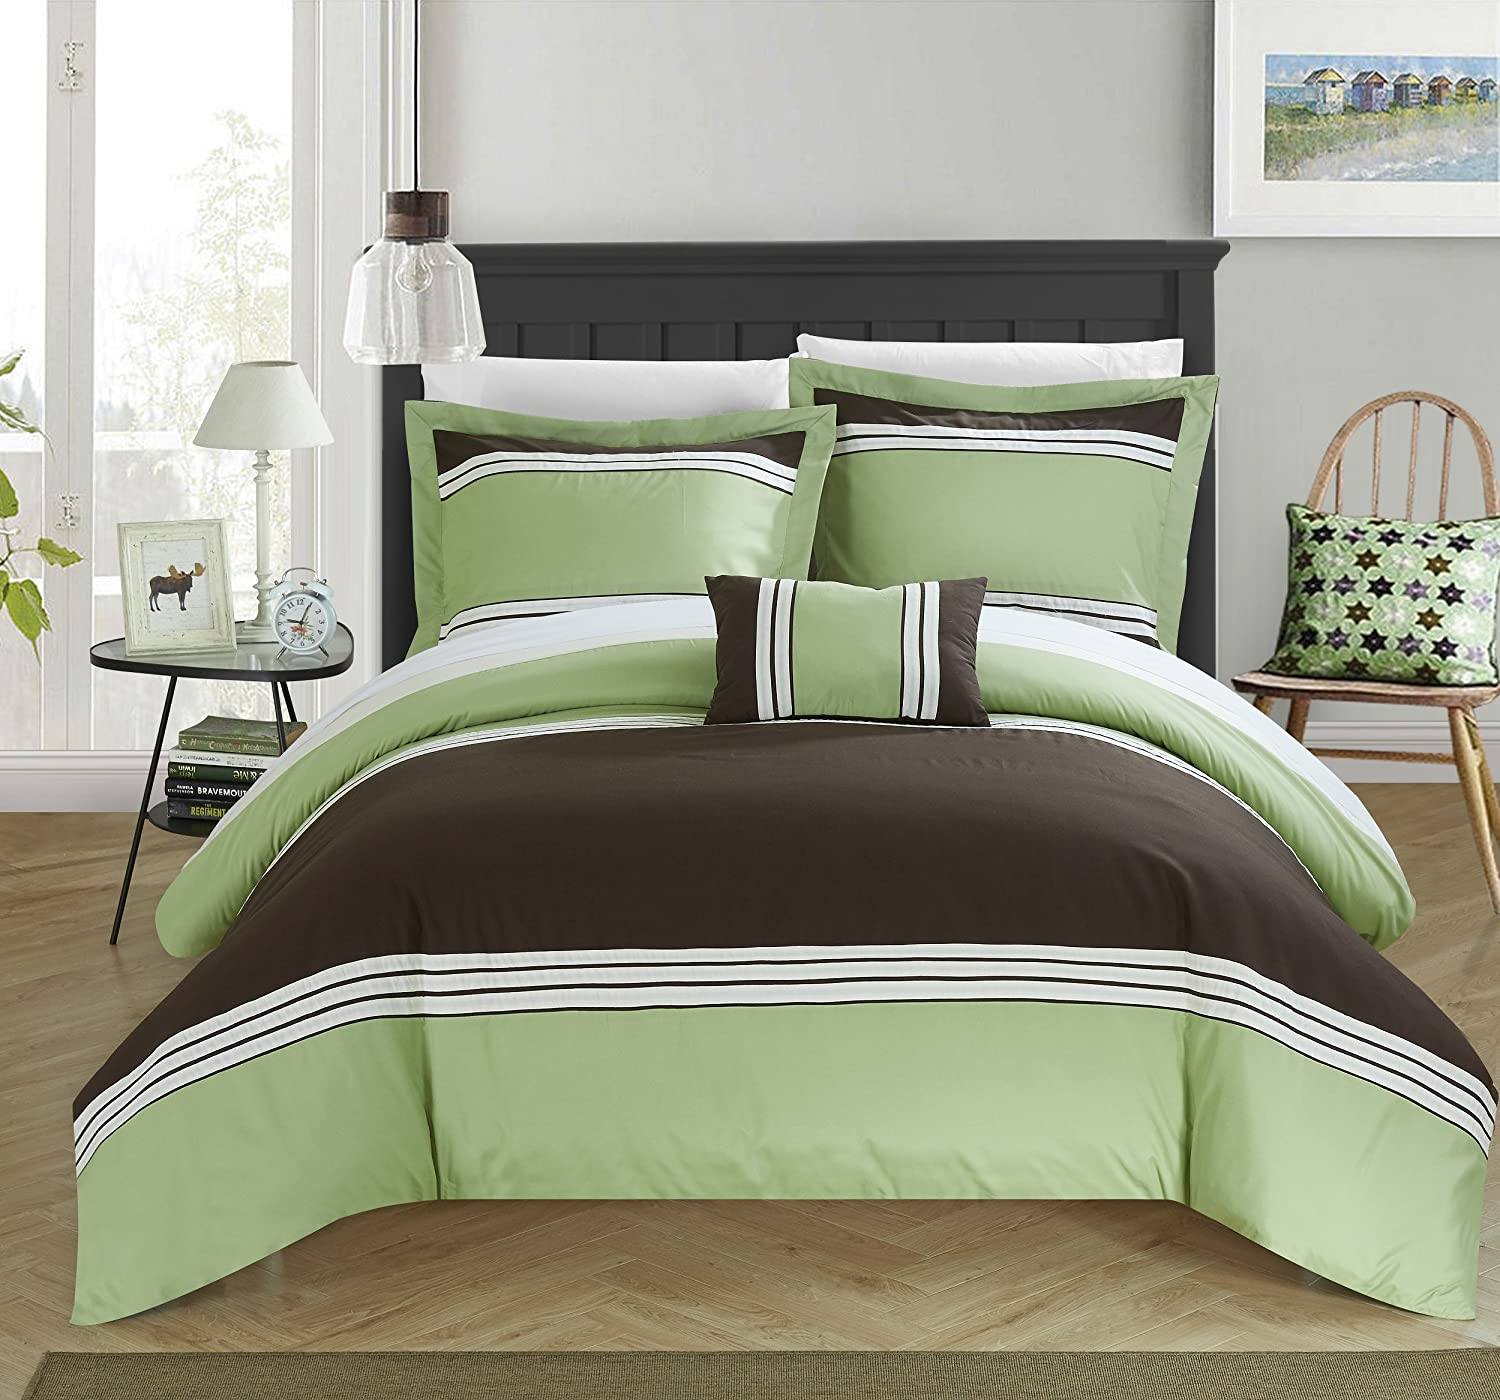 Chic Home 4 Piece Madison Hotel Collection Striped Patchwork Color Block Duvet Cover Set Shams And Decorative Pillows Included, King, Green